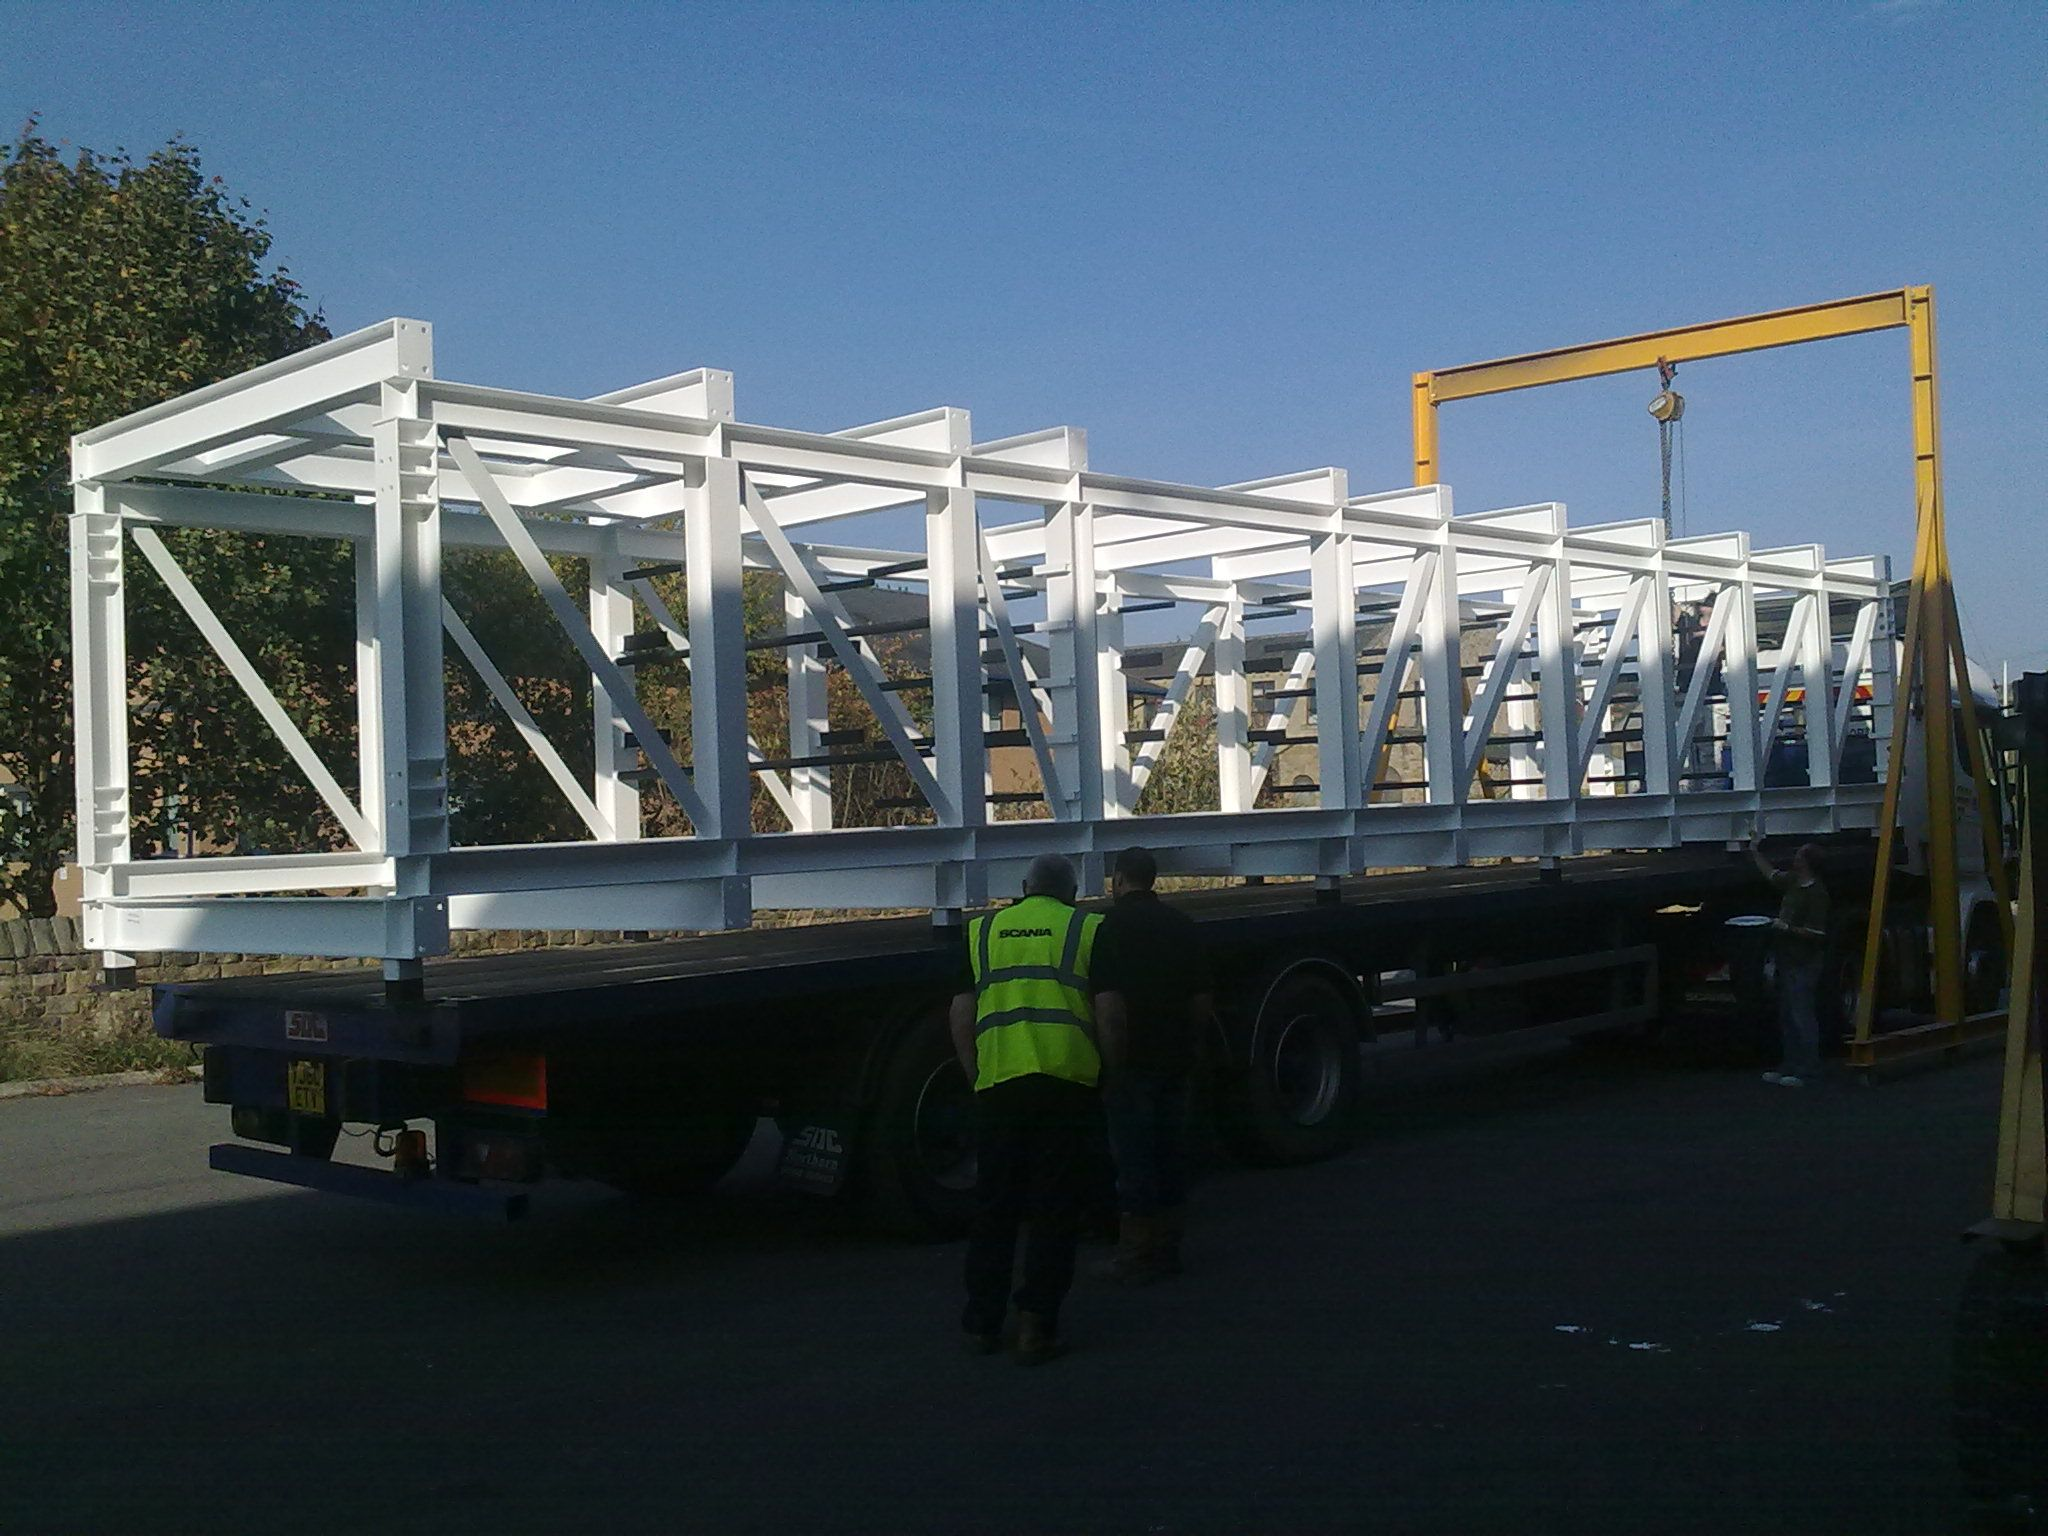 Manufactured by ASG - Steel Plantrooms for Baileys Leeds - Large Steel Frames - Powder Coated